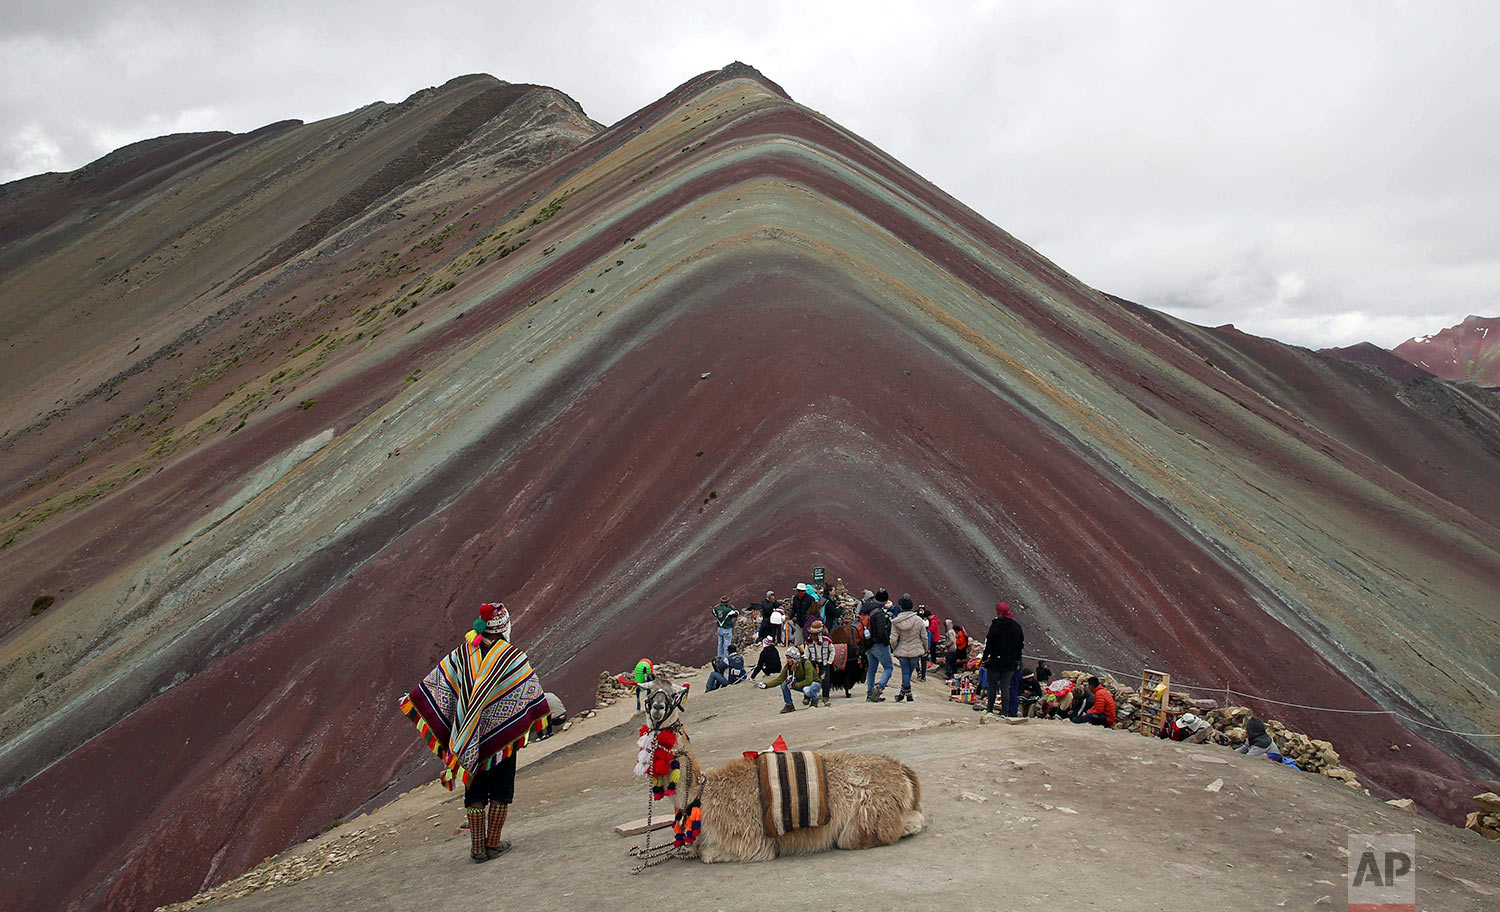 "An Andean man rests with his llama as tourists visit Rainbow Mountain in Pitumarca, Peru, March 2, 2018. Stripes of turquoise, lavender and gold blanket what has become known as ""Rainbow Mountain,"" a ridge of multicolored sediments laid down millions of years ago and pushed up as tectonic plates clashed. This March photo published in May. (AP Photo/Martin Mejia)"